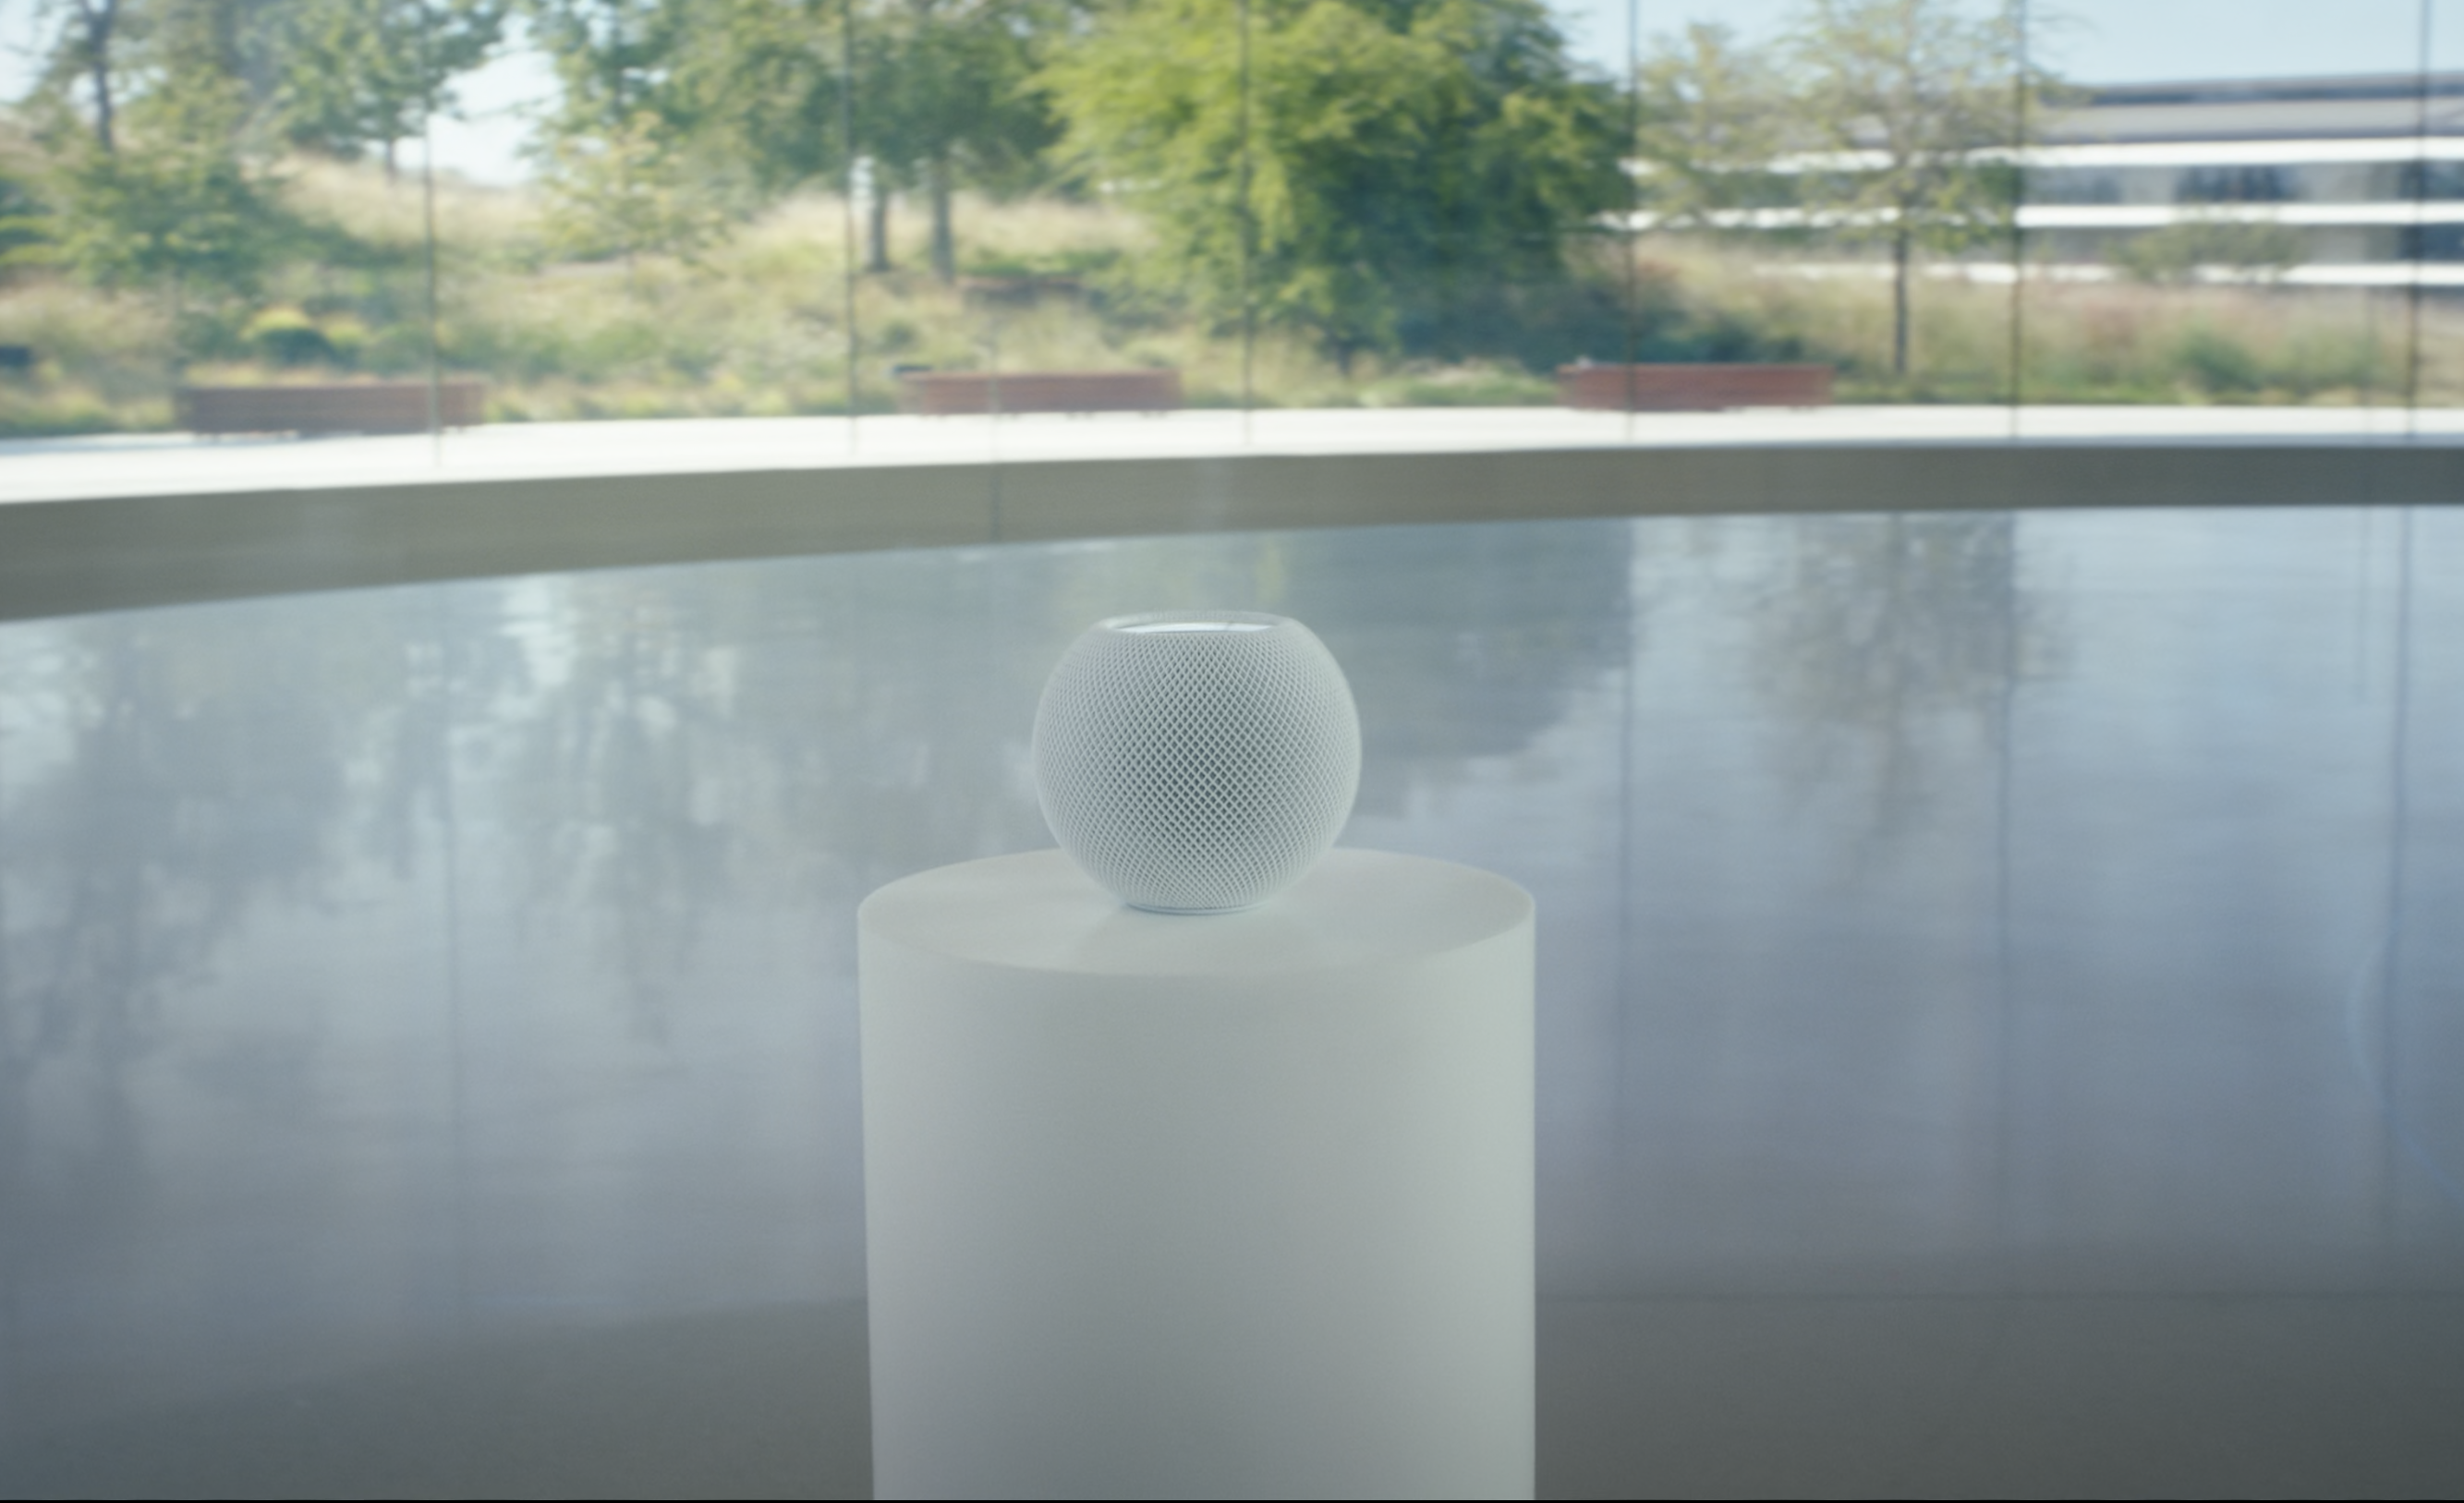 These Wireless Speakers Were Designed to Work Better With iPhones, iPads, and Macs